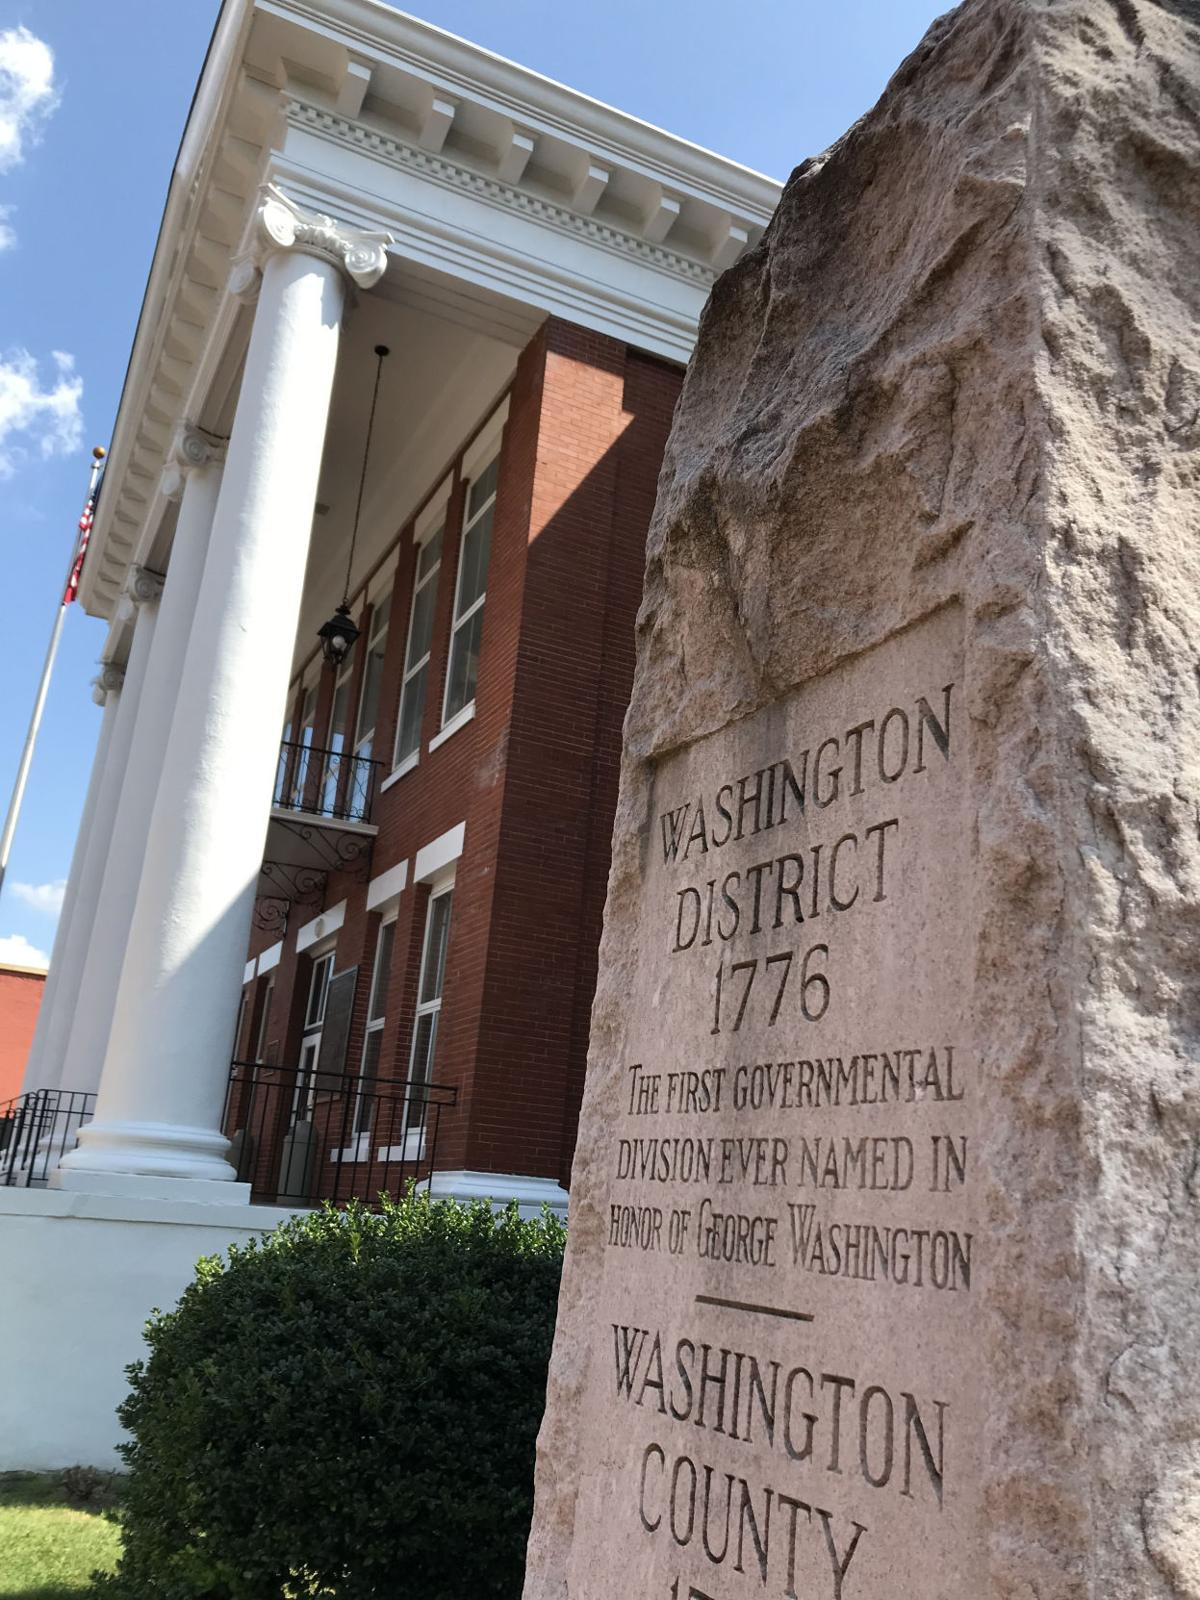 BHC 09292019 JT sSTORY8 washington county courthouse where